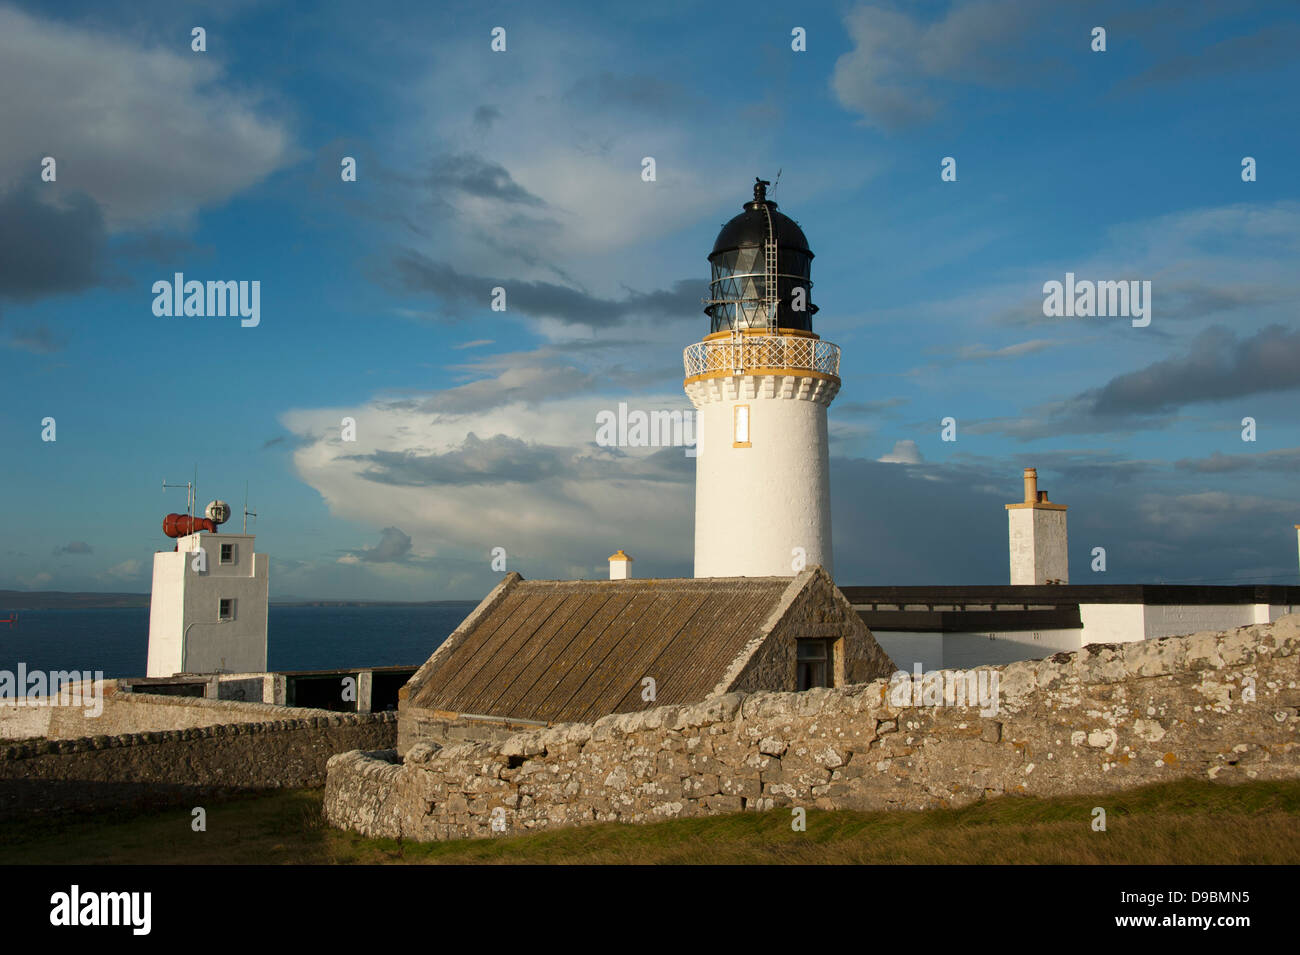 Lighthouse, Dunnet Head, Scotland, Great Britain, Europe, most northerly point of mainland Britain, Easter Head - Stock Image